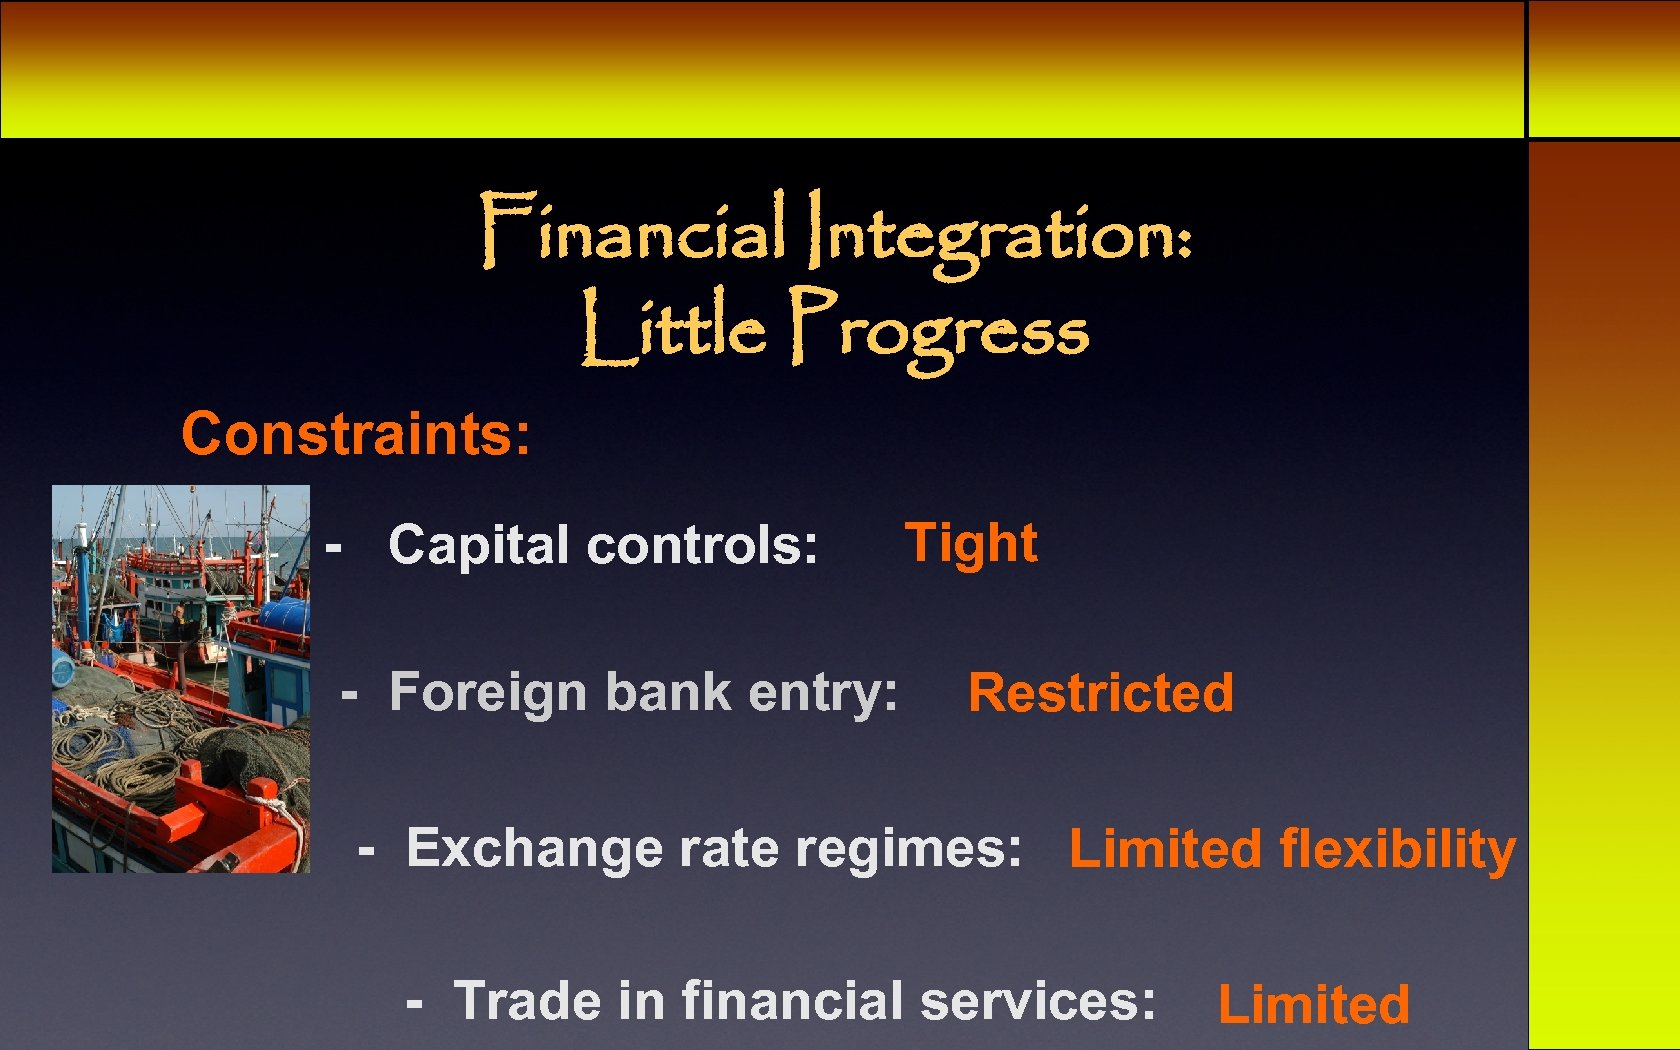 Financial Integration: Little Progress Constraints: - Capital controls: - Foreign bank entry: Tight Restricted